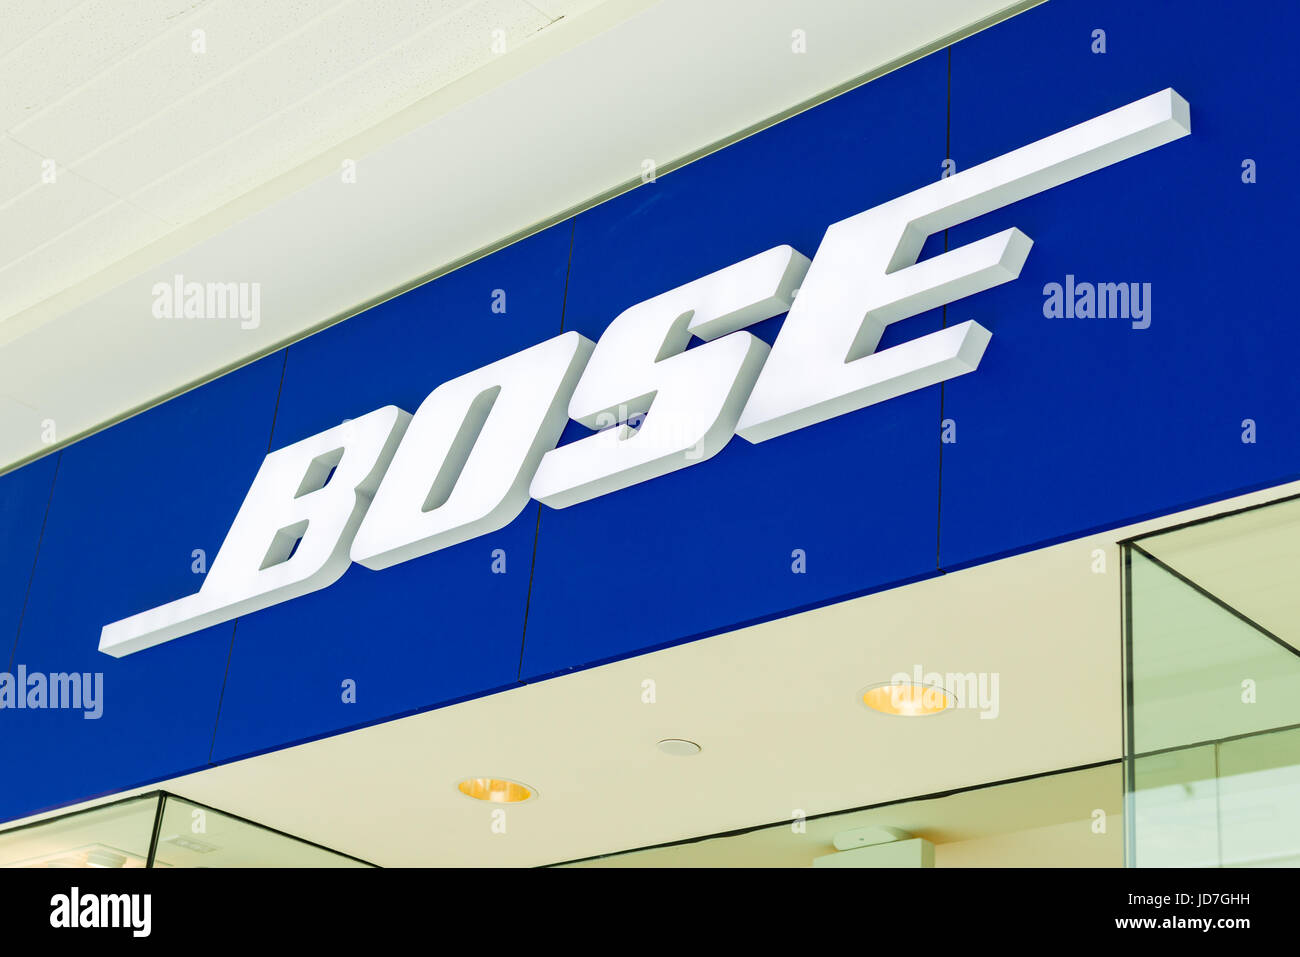 BOSE Brand Logo On Building Exterior - Stock Image